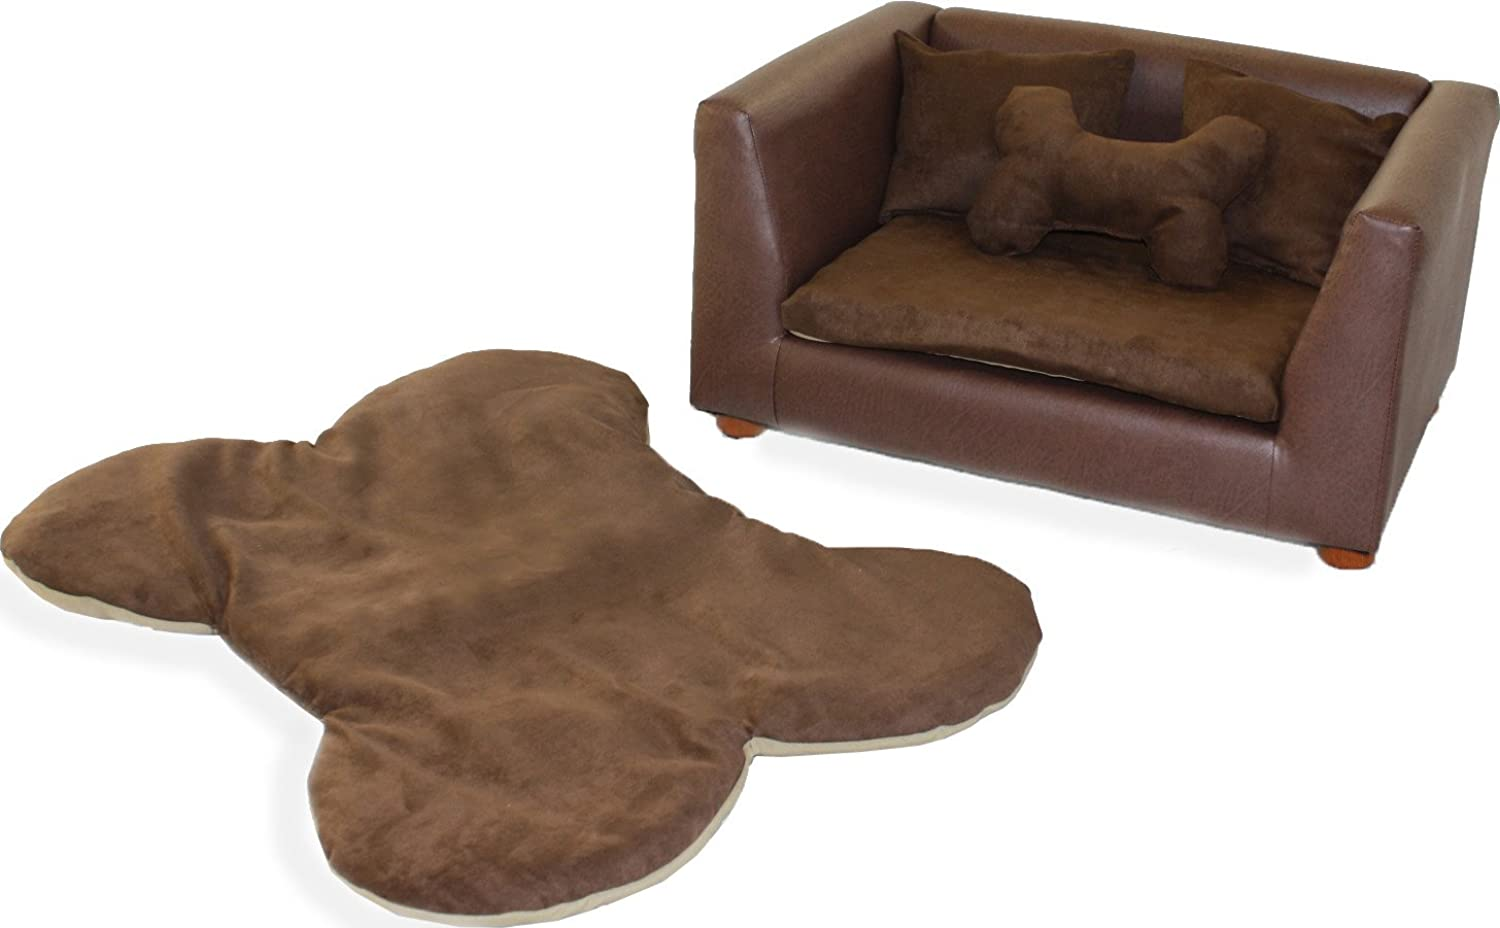 Keet Deluxe Orthopedic Memory Foam Dog Bed Set, Small, Brown